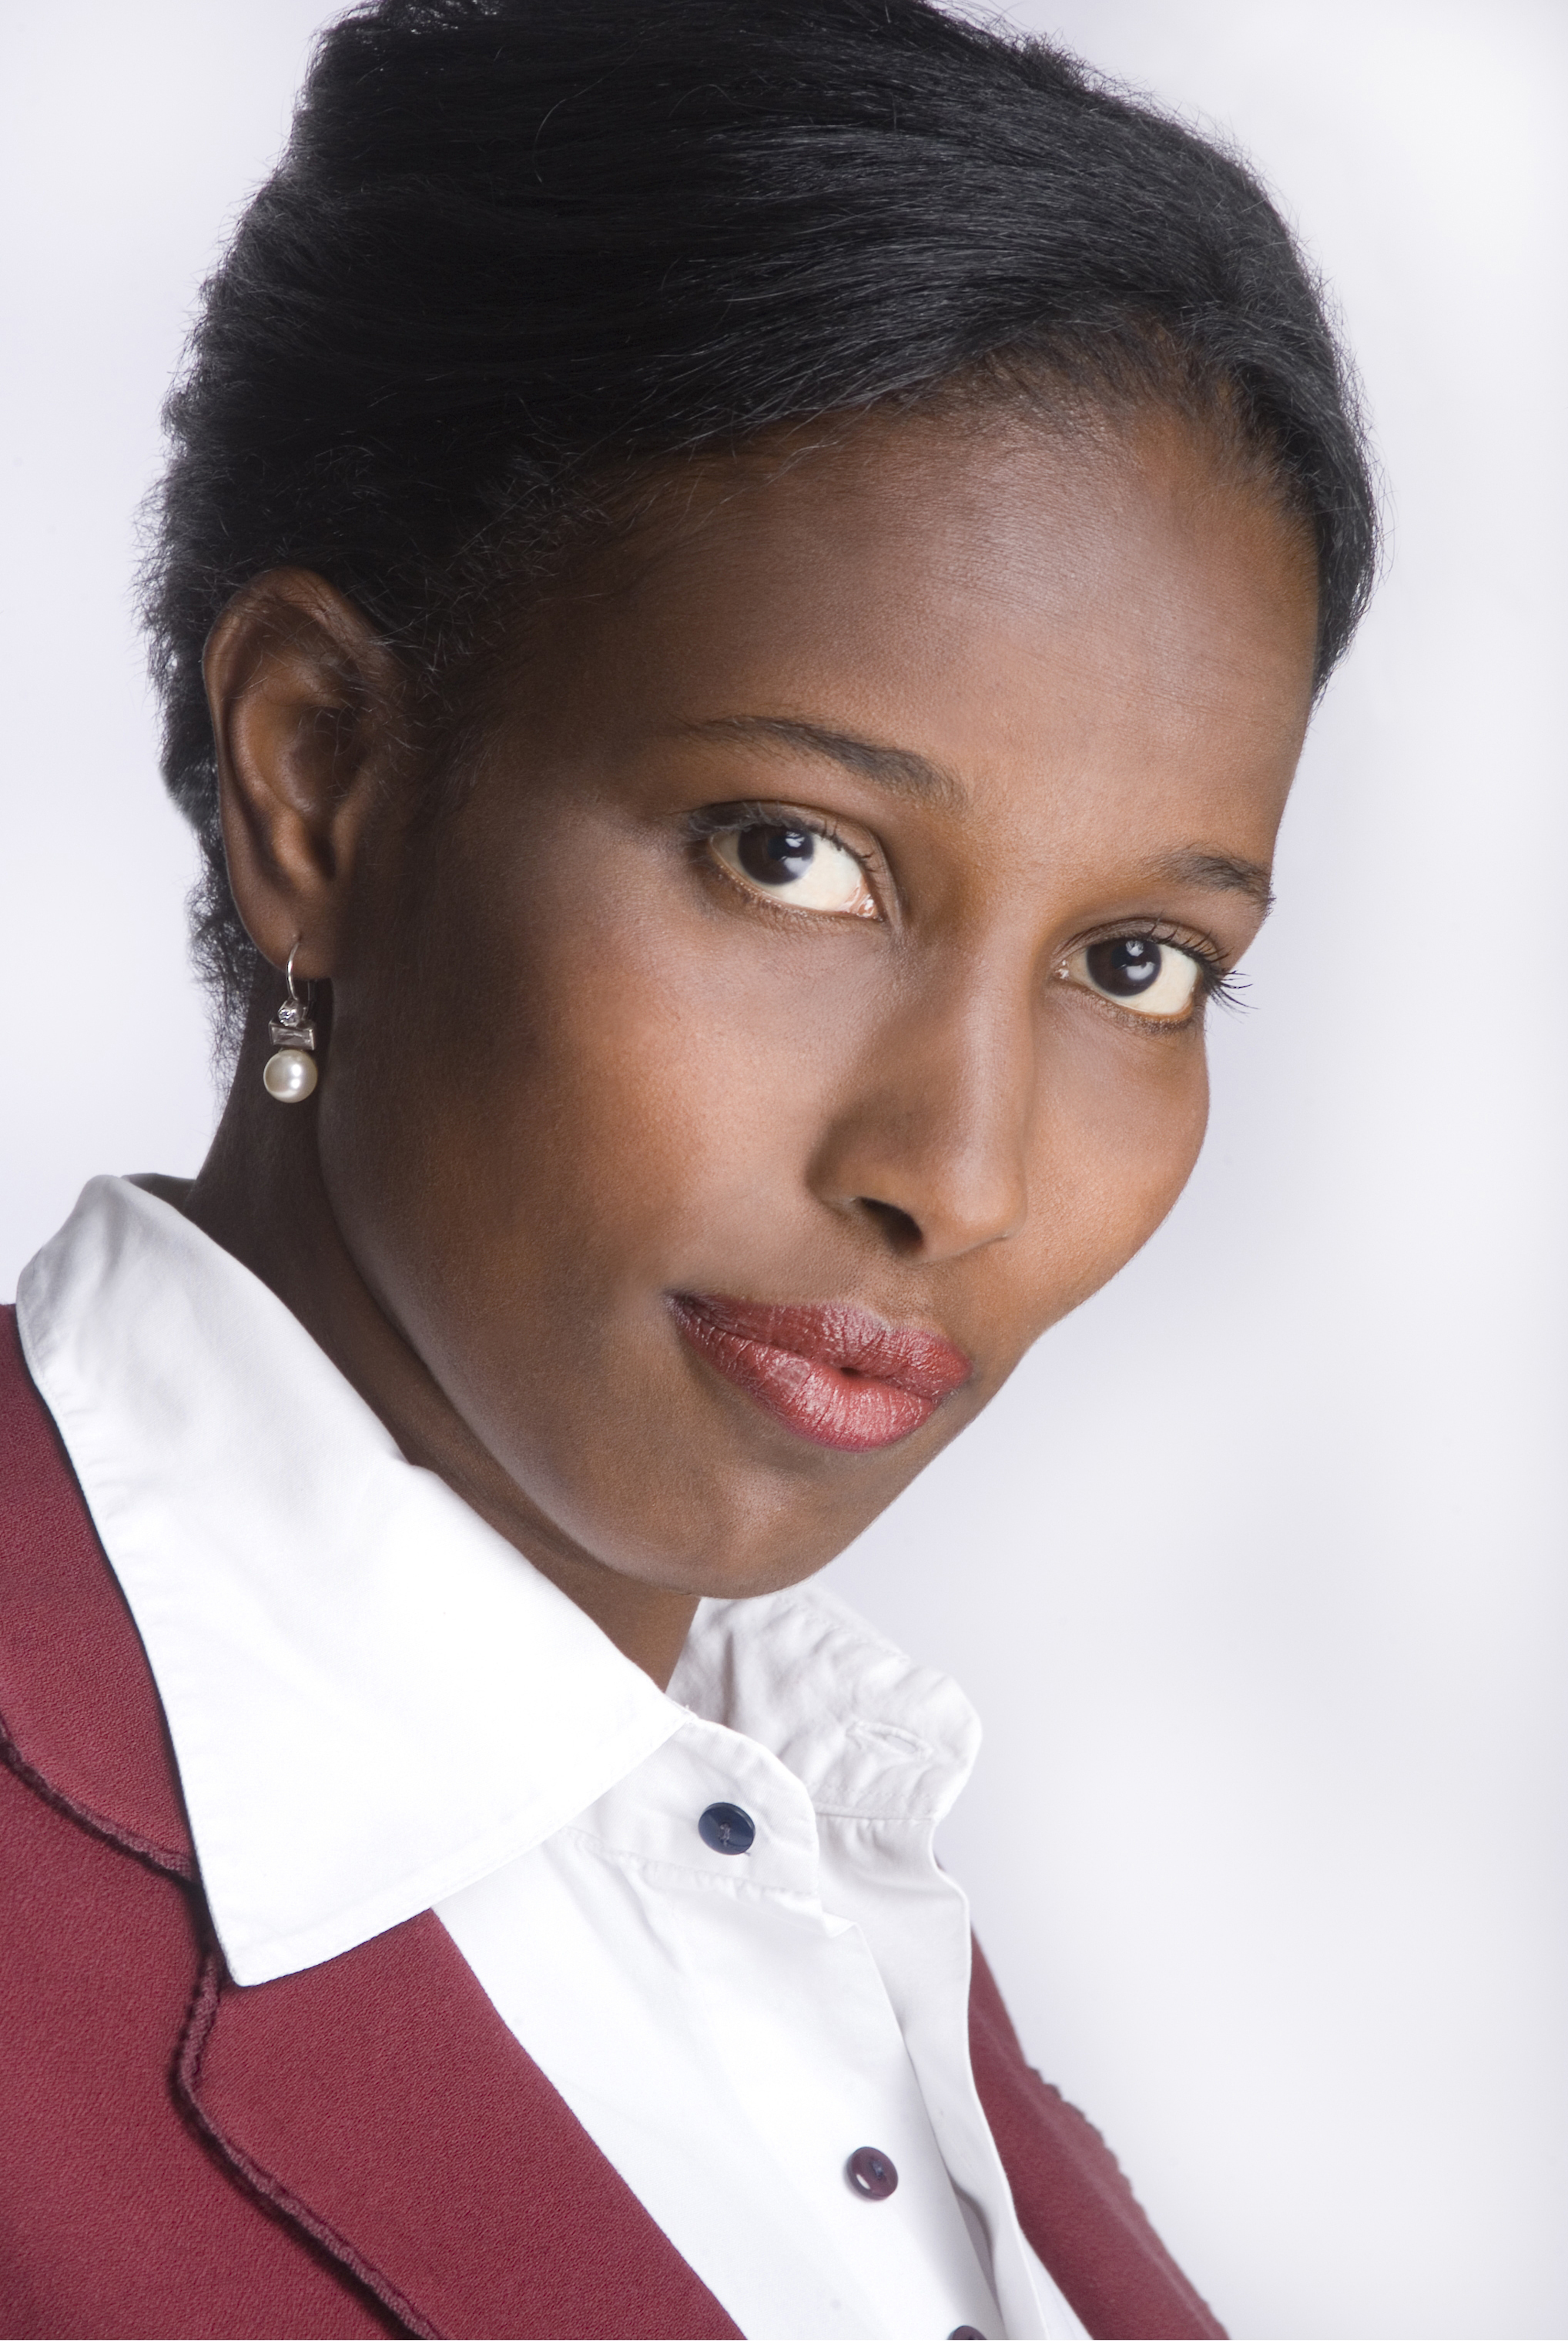 Ayaan Hirsi Ali author